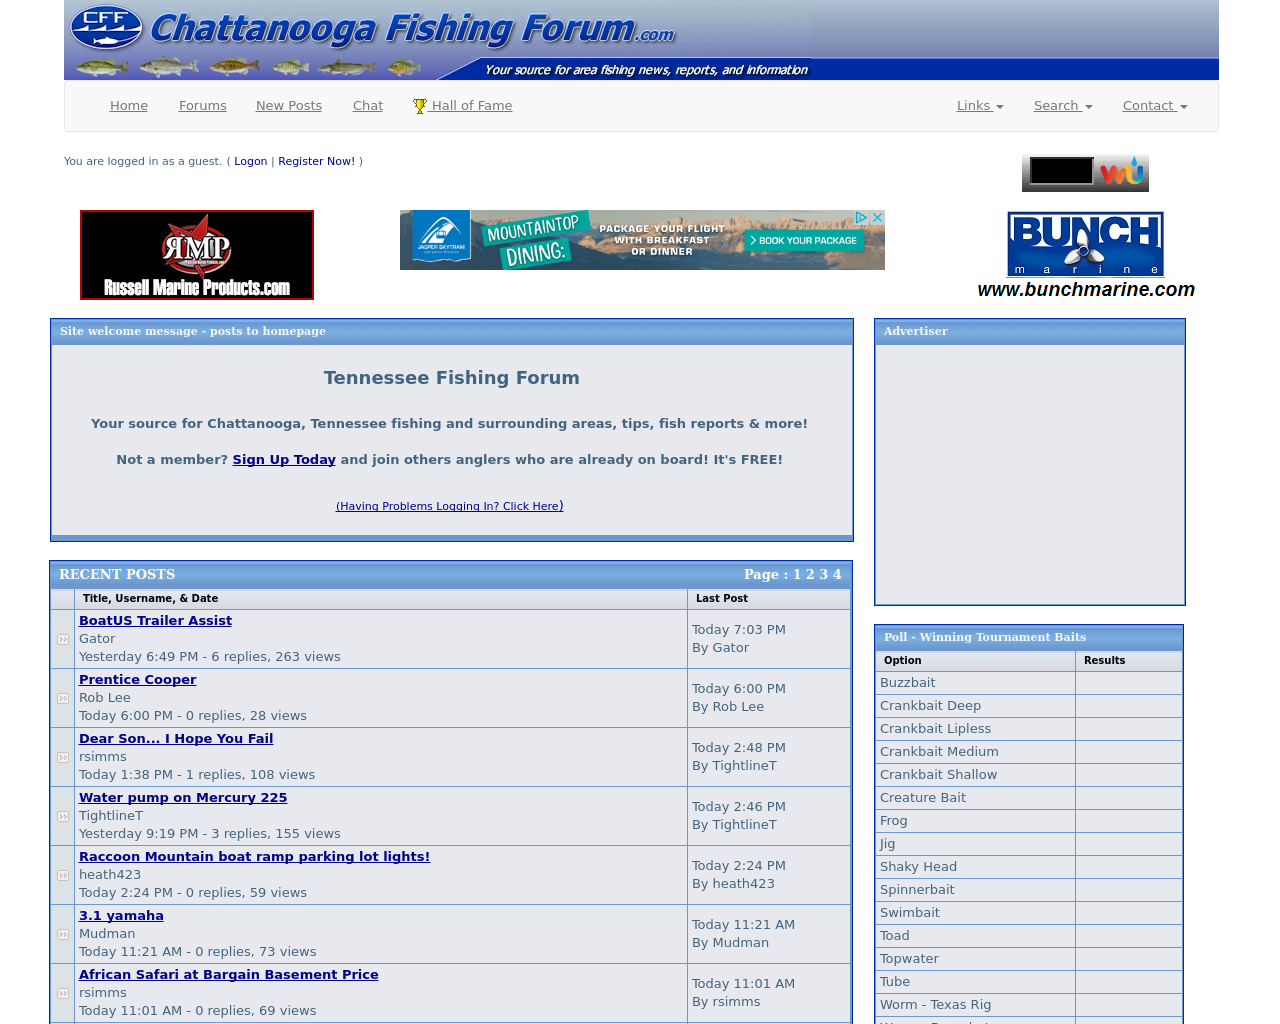 Chattanooga-Fishing-Forum-Advertising-Reviews-Pricing